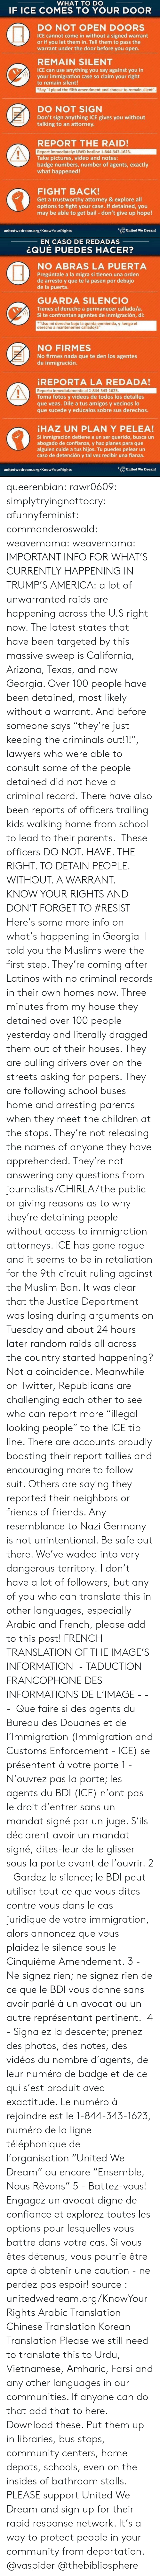 """Thinkprogress: WHAT TO DO  IF ICE COMES TO YOUR DOOR  DO NOT OPEN DOORS  ICE cannot come in without a signed warrant  or if you let them in. Tell them to pass the  warrant under the door before you open.  REMAIN SILENT  ICE can use anything you say against you in  your immigration case so claim your right  to remain silent!  Say """"I plead the fifth amendment and choose to remain silent""""  DO NOT SIGN  Don't sign anything ICE gives you without  talking to an attorney.  REPORT THE RAID!  Report immediately: UWD hotline 1-844-343-1623.  Take pictures, video and notes:  badge numbers, number of agents, exactly  what happened!  FIGHT BACK!  Get a trustworthy attorney & explore all  options to fight your case. If detained, you  may be able to get bail - don't give up hope!  unitedwedream.org/KnowYourRights  United We Dreami   EN CASO DE REDADAS  ¿QUÉ PUEDES HACER?  NO ABRAS LA PUERTA  Pregúntale a la migra si tienen una orden  de arresto y que te la pasen por debajo  de la puerta.  GUARDA SILENCIO  Tienes el derecho a permanecer callado/a.  Si te confrontan agentes de inmigración, di:  """"Uso mi derecho bajo la quinta enmienda, y tengo el  derecho a mantenerme callado/a""""  NO FIRMES  No firmes nada que te den los agentes  de inmigracion.  REPORTA LA REDADA!  Reporta inmediatamente al 1-844-343-1623.  Toma fotos y videos de todos los detalles  que veas. Dile a tus amigos y vecinos lo  que sucede y edúcalos sobre sus derechos.  HAZ UN PLAN Y PELEA!  Sí inmigración detiene a un ser querido, busca un  abogado de confianza, y haz planes para que  alguien cuide a tus hijos. Tu puedes pelear un  caso de detención y tal vez recibir una fianza.  unitedwedream.org/KnowYourRights  United We Dream queerenbian:  rawr0609:   simplytryingnottocry:  afunnyfeminist:  commanderoswald:   weavemama:  weavemama:  IMPORTANT INFO FOR WHAT'S CURRENTLY HAPPENING IN TRUMP'S AMERICA:a lot of unwarranted raids are happening across the U.S right now. The latest states that have been targeted by this massi"""